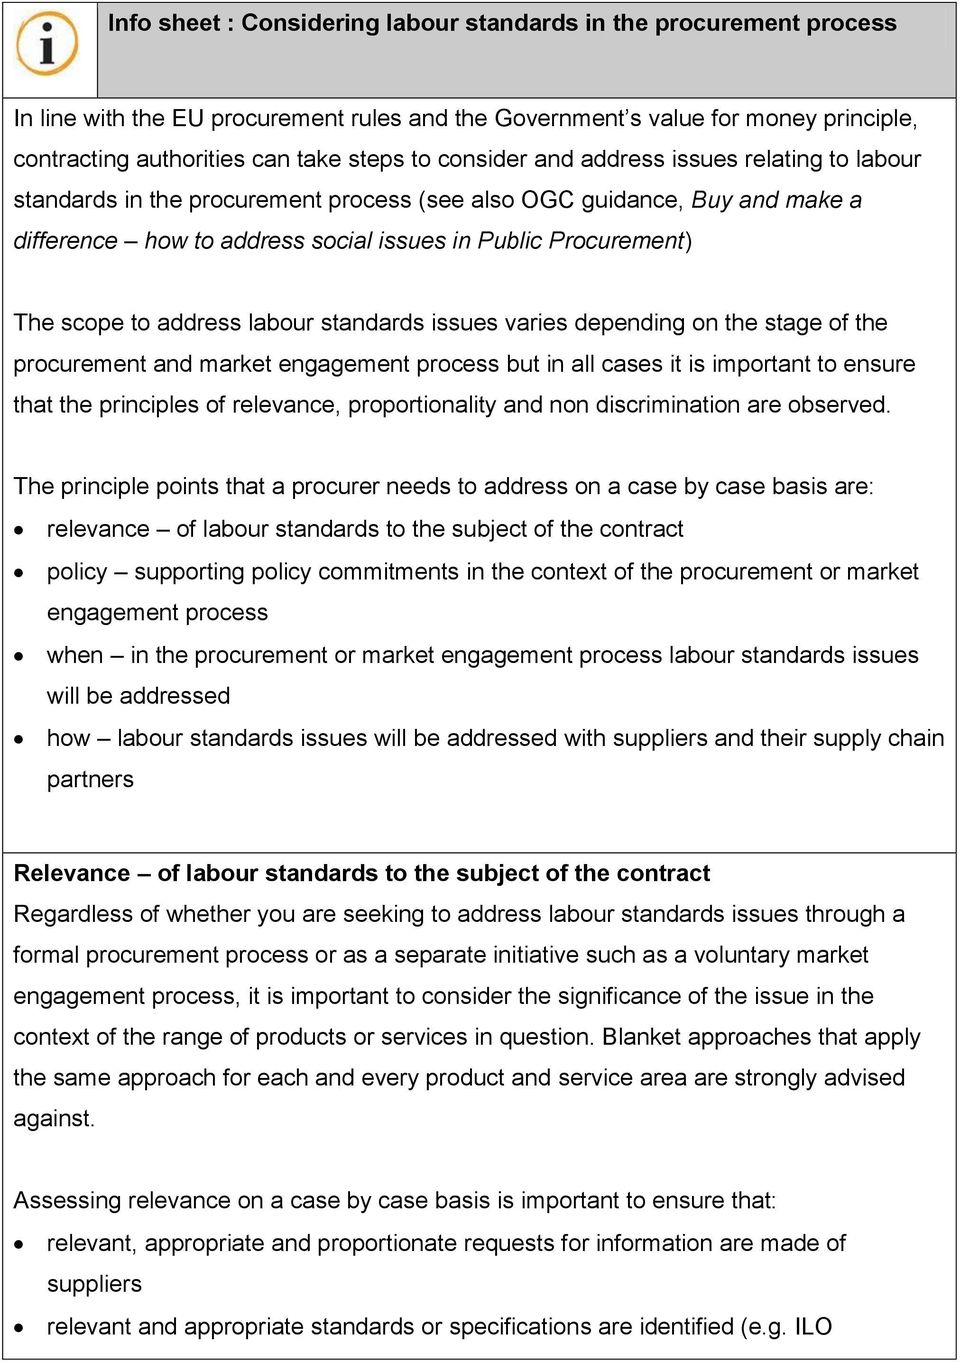 address labour standards issues varies depending on the stage of the procurement and market engagement process but in all cases it is important to ensure that the principles of relevance,